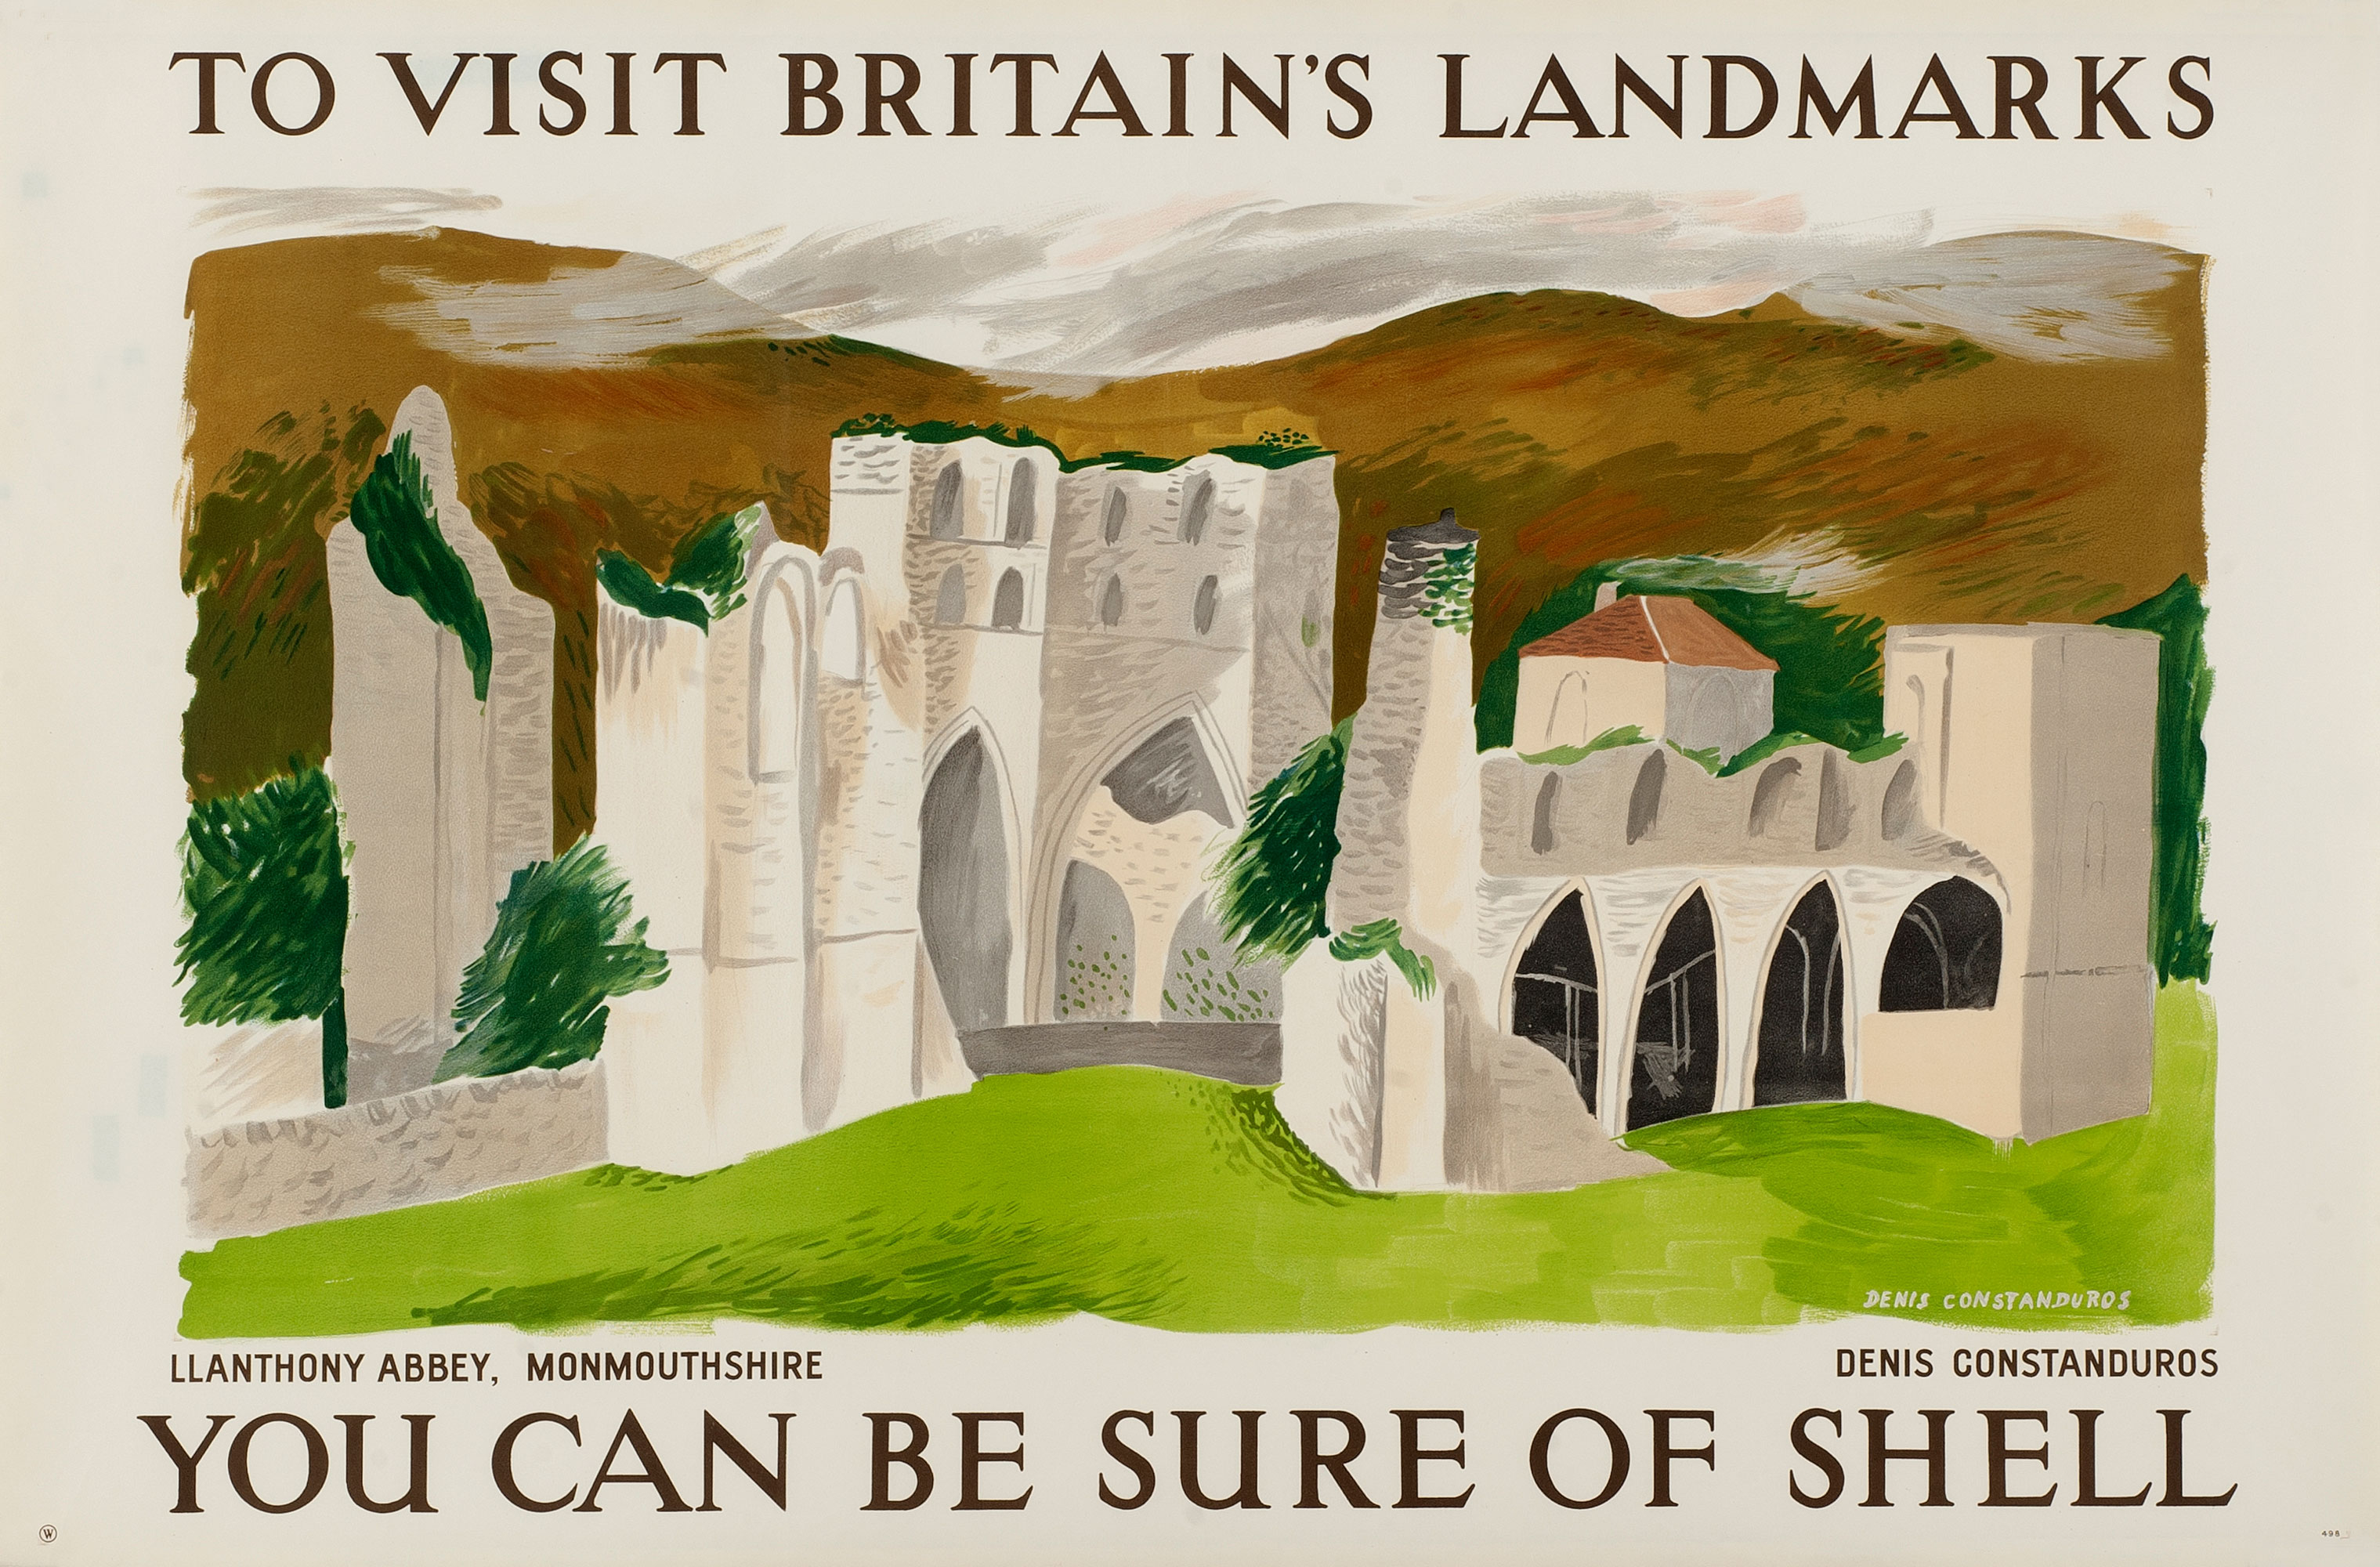 Shell poster number 498, Llanthony Abbey, Monmouth by Denis Constanduros. Landscape painting of Lllanthony Abbey.